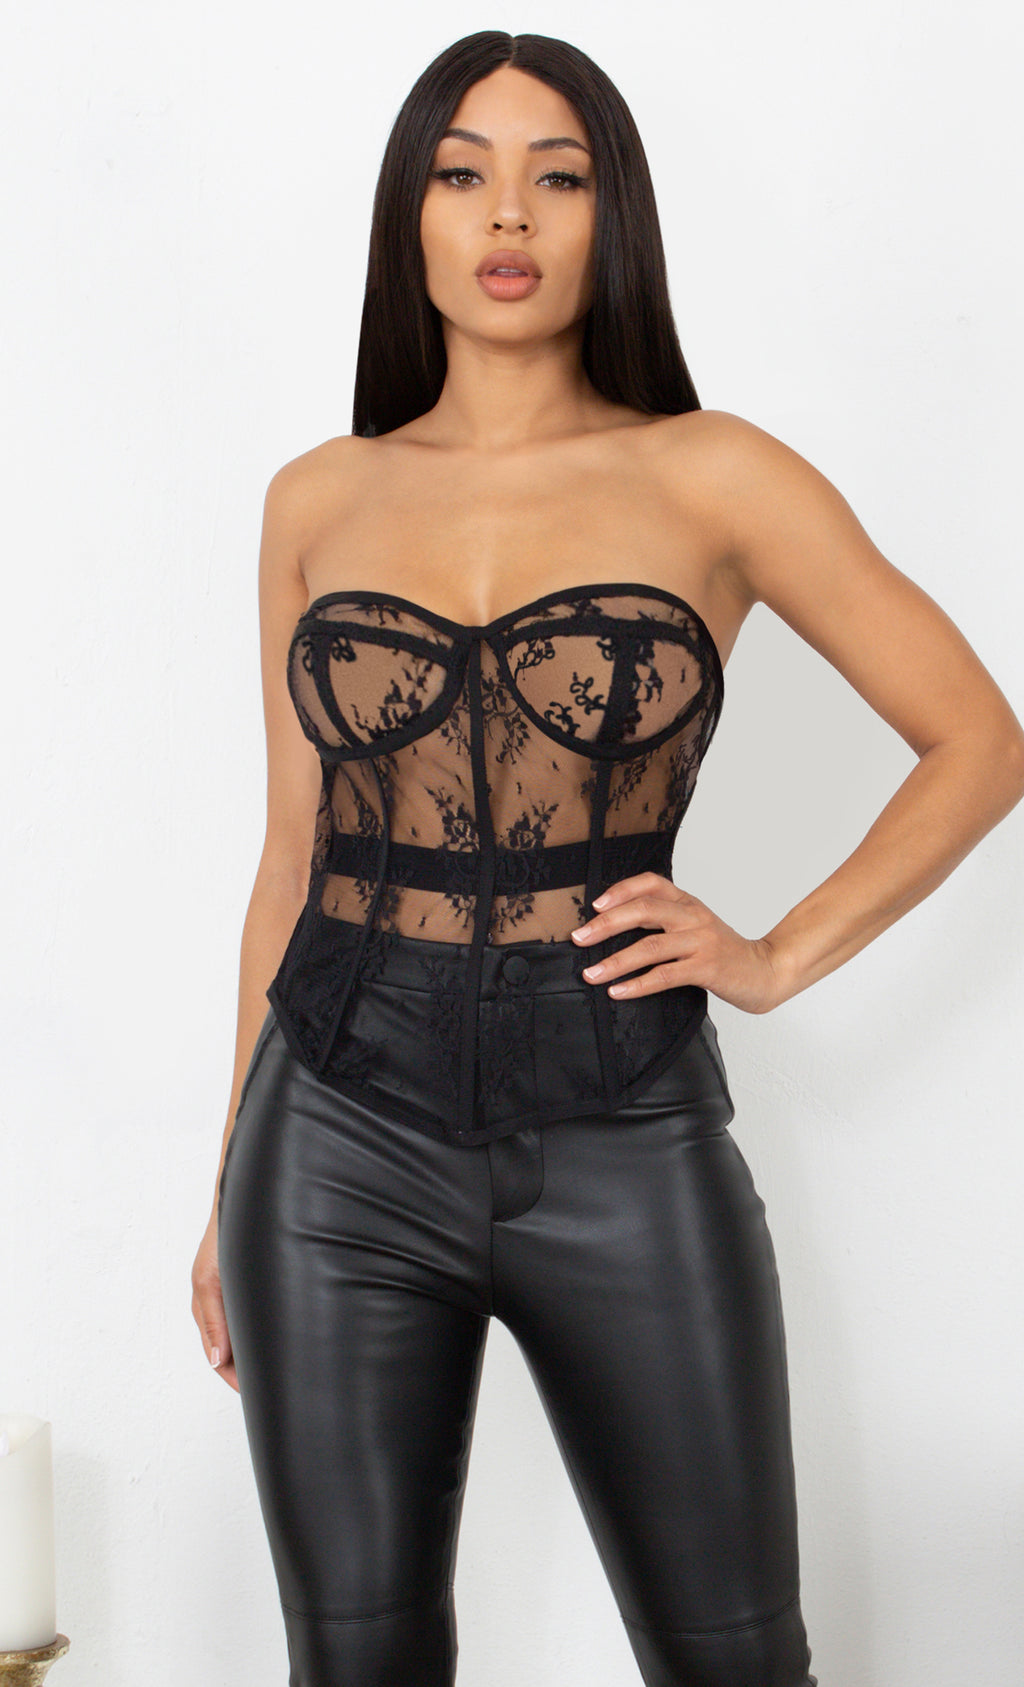 Fierce Female Black Mesh Lace Sheer Strapless Seamed Boned Sweetheart Neck Bustier Top